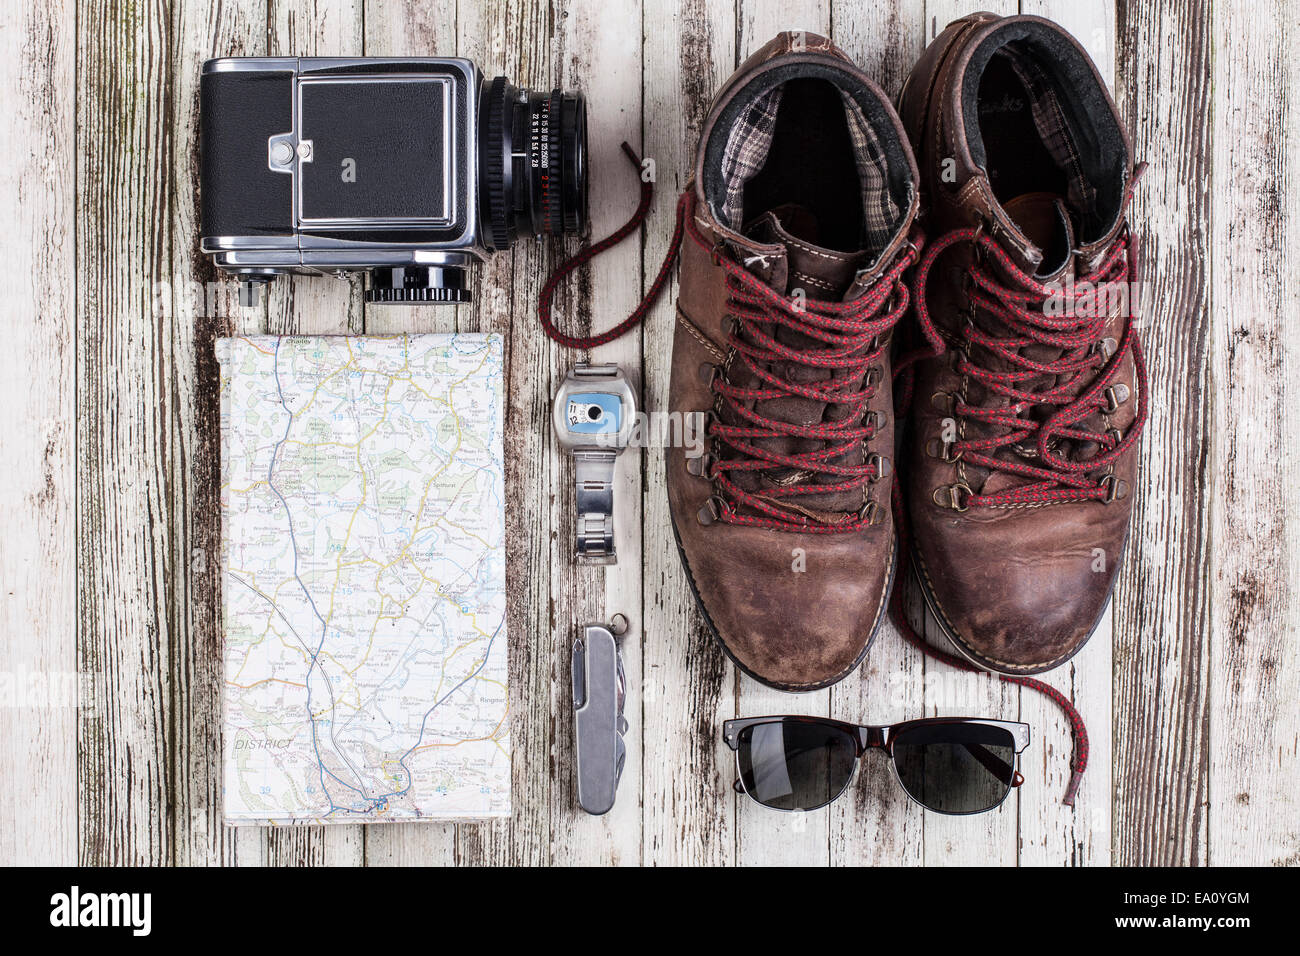 Still life of map with medium format camera and hiking boots - Stock Image